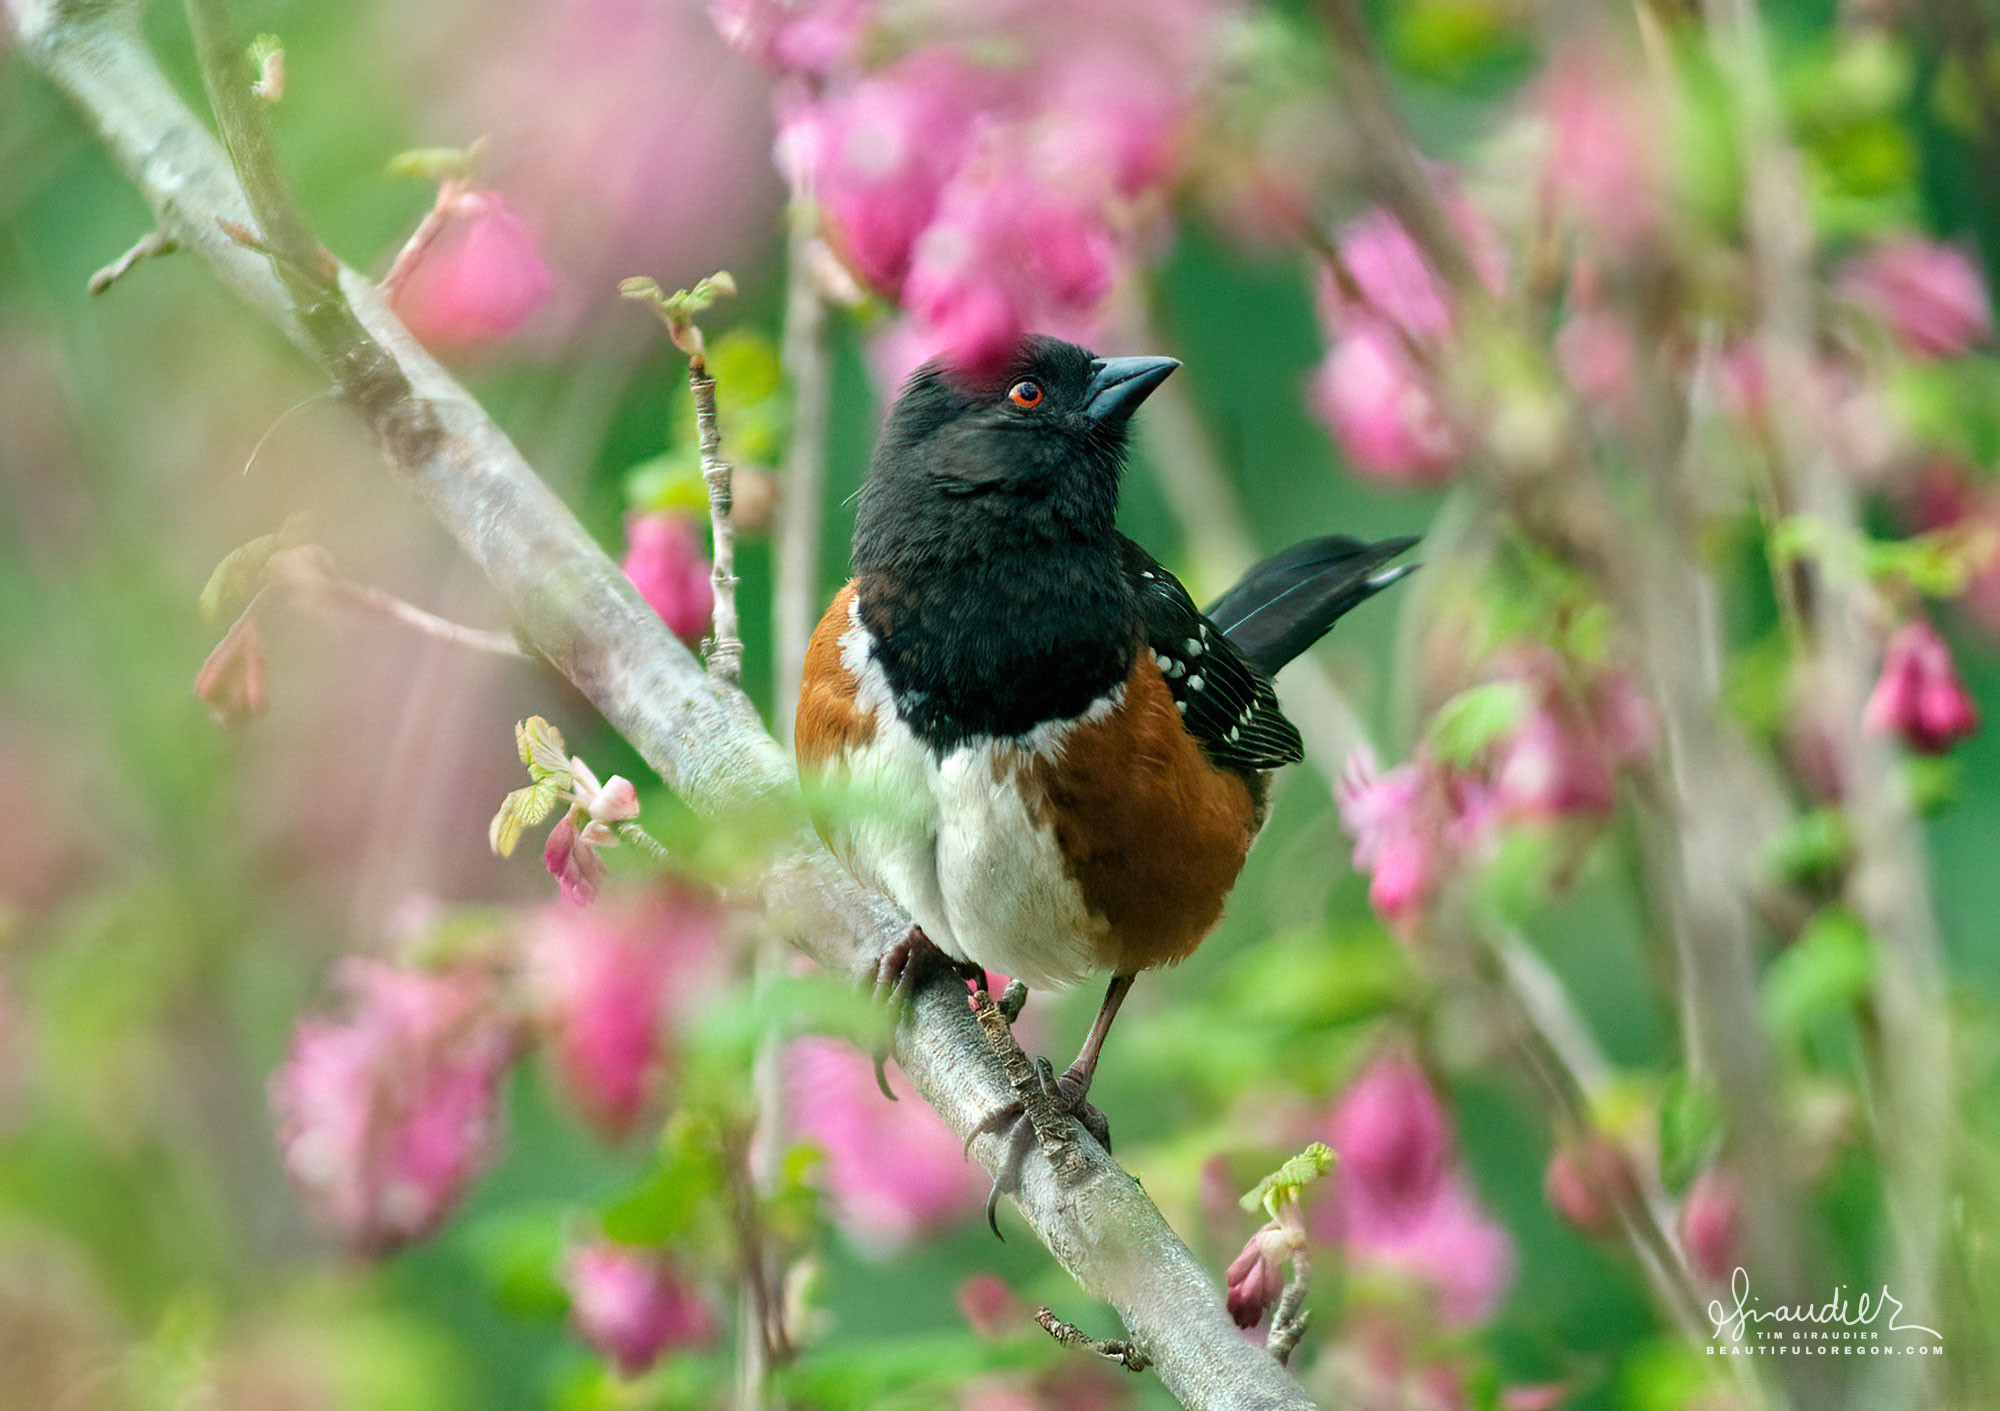 A Spotted Towhee (Pipilo maculatus) surveys its surroundings from the safety of a flowering current. Hendricks Park, South Willamette Valley. Oregon bird watching photography